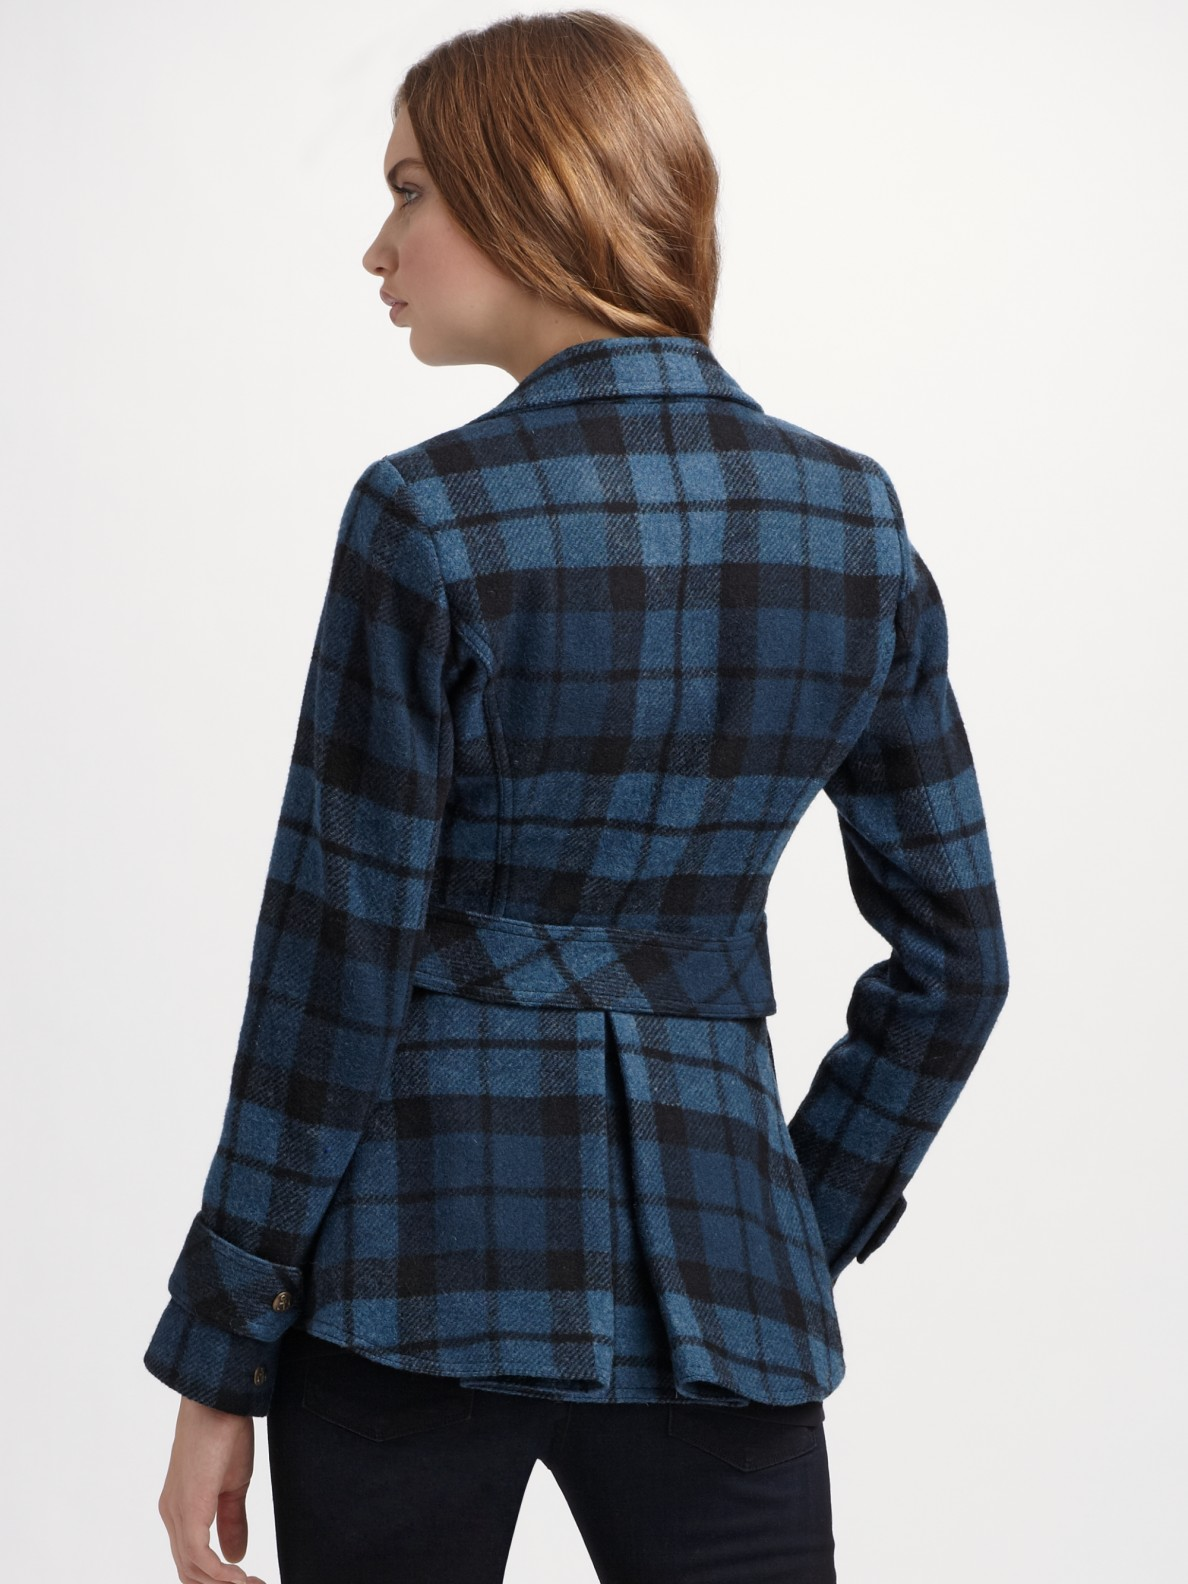 Smythe Plaid Hunting Jacket In Blue Lyst